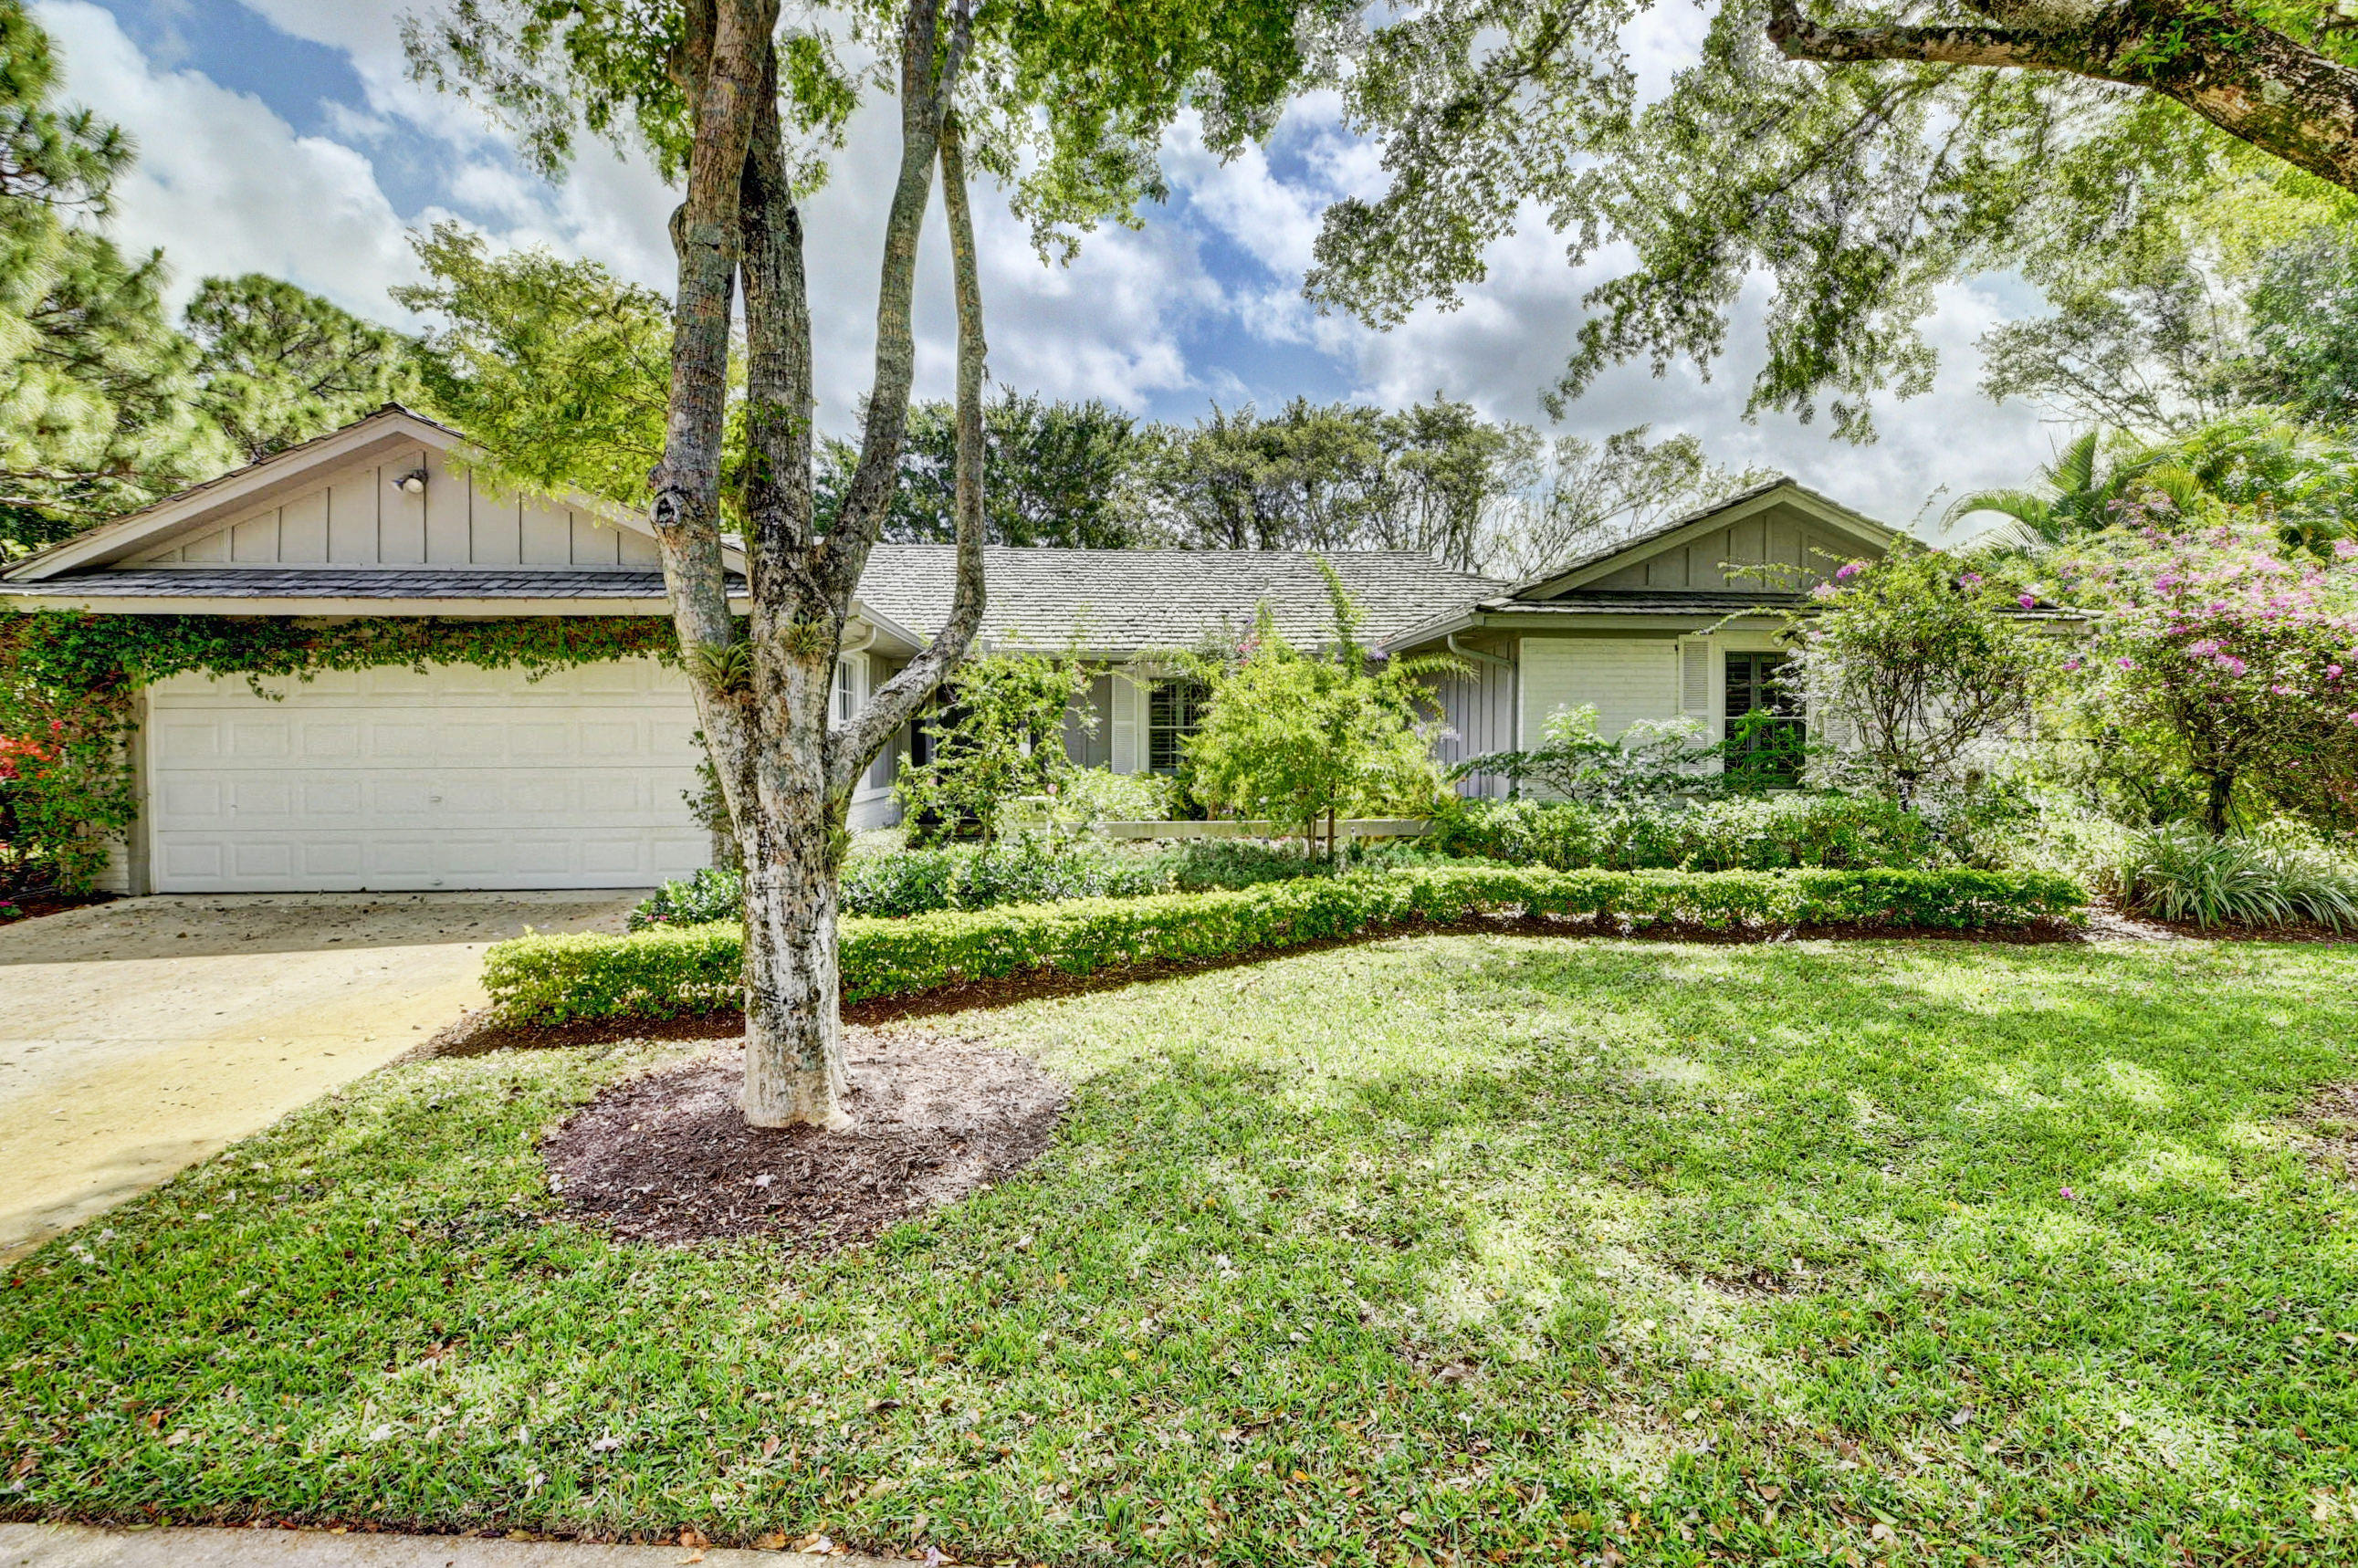 Home for sale in Millpond Boca Raton Florida